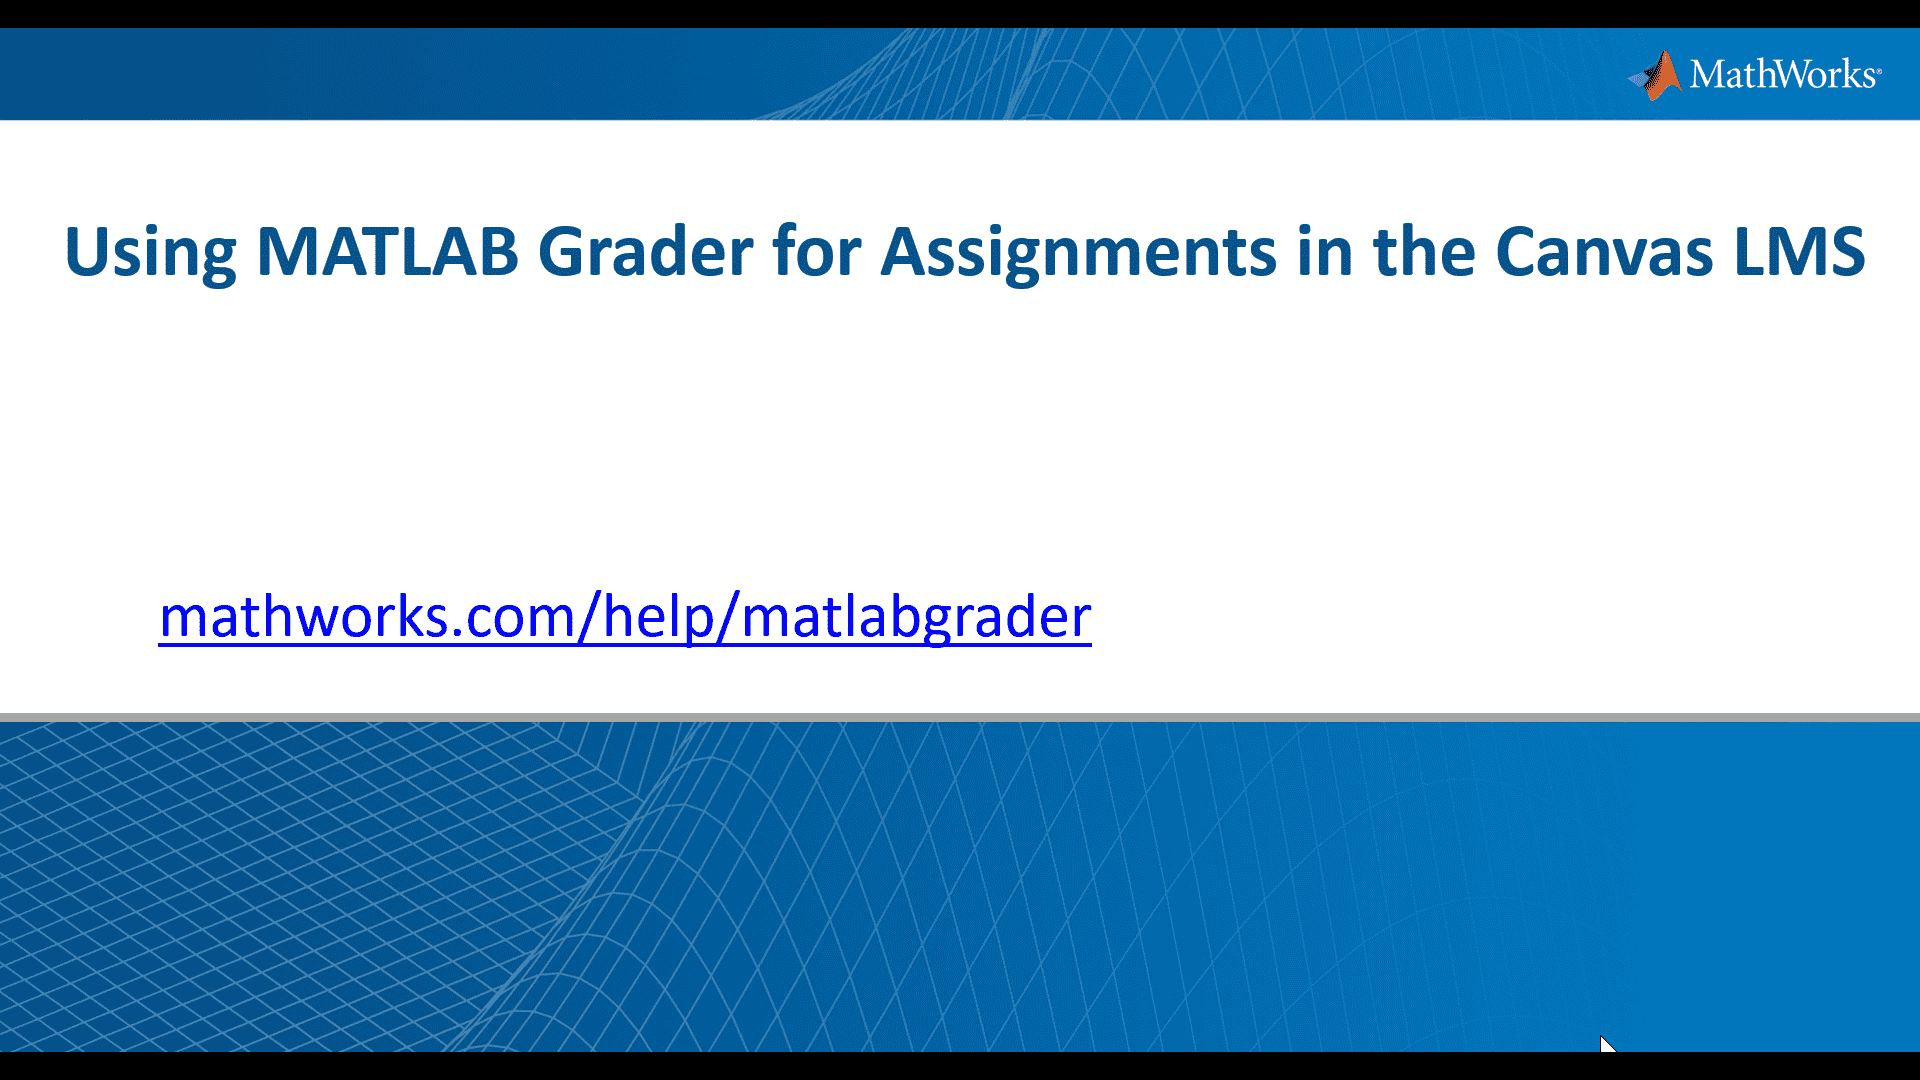 Learn how instructors can add automatically graded MATLAB-based assignments to their Canvas learning management system using MATLAB Grader.